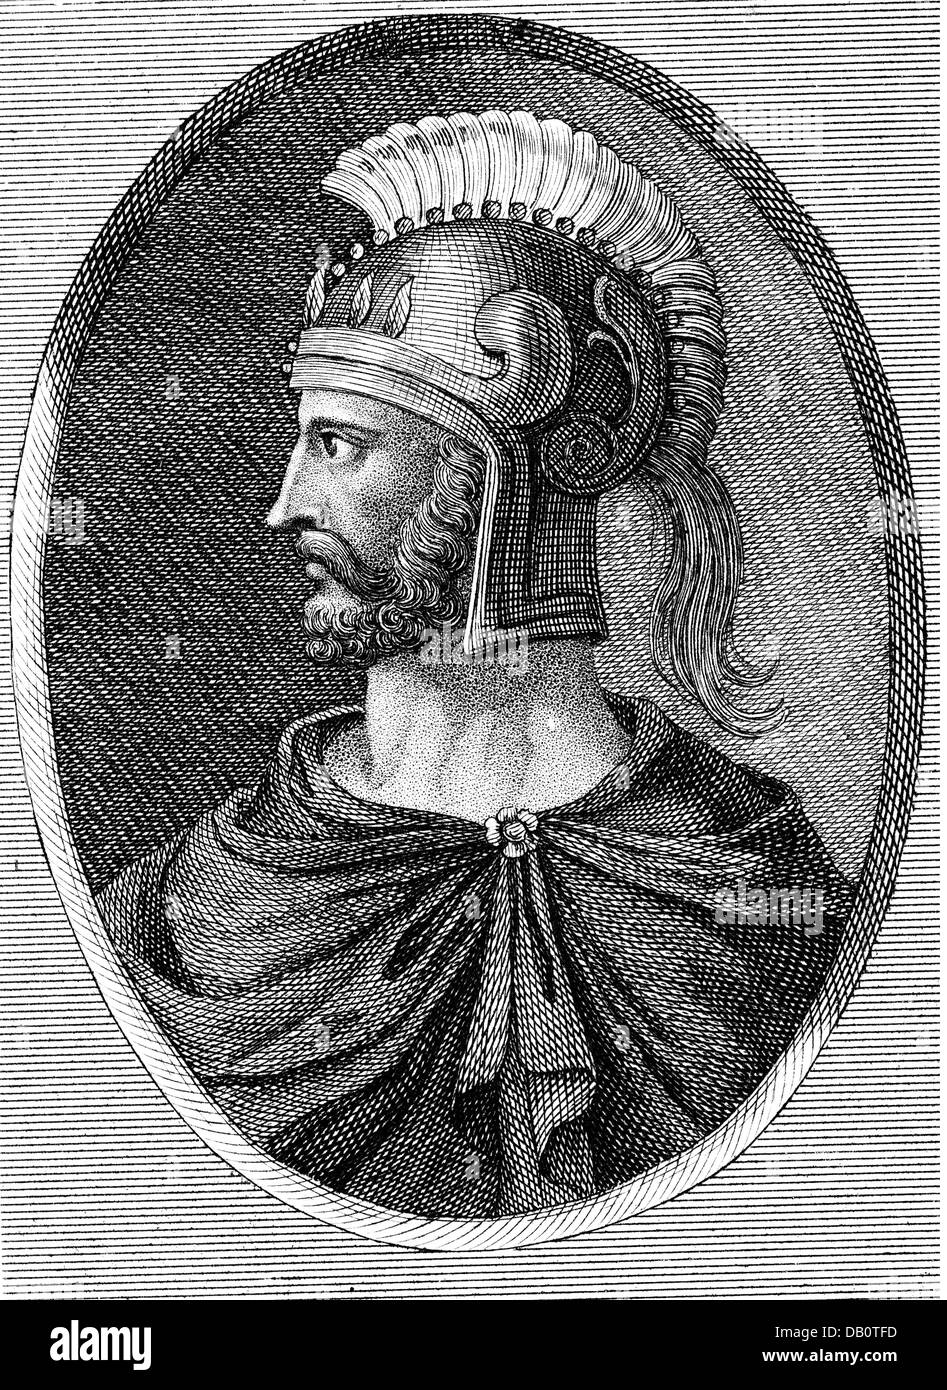 a biography of general hannibal of carthage With their best general defeated, the carthaginians accepted defeat and surrendered to rome  the fall of carthage cover: hannibal in later life.